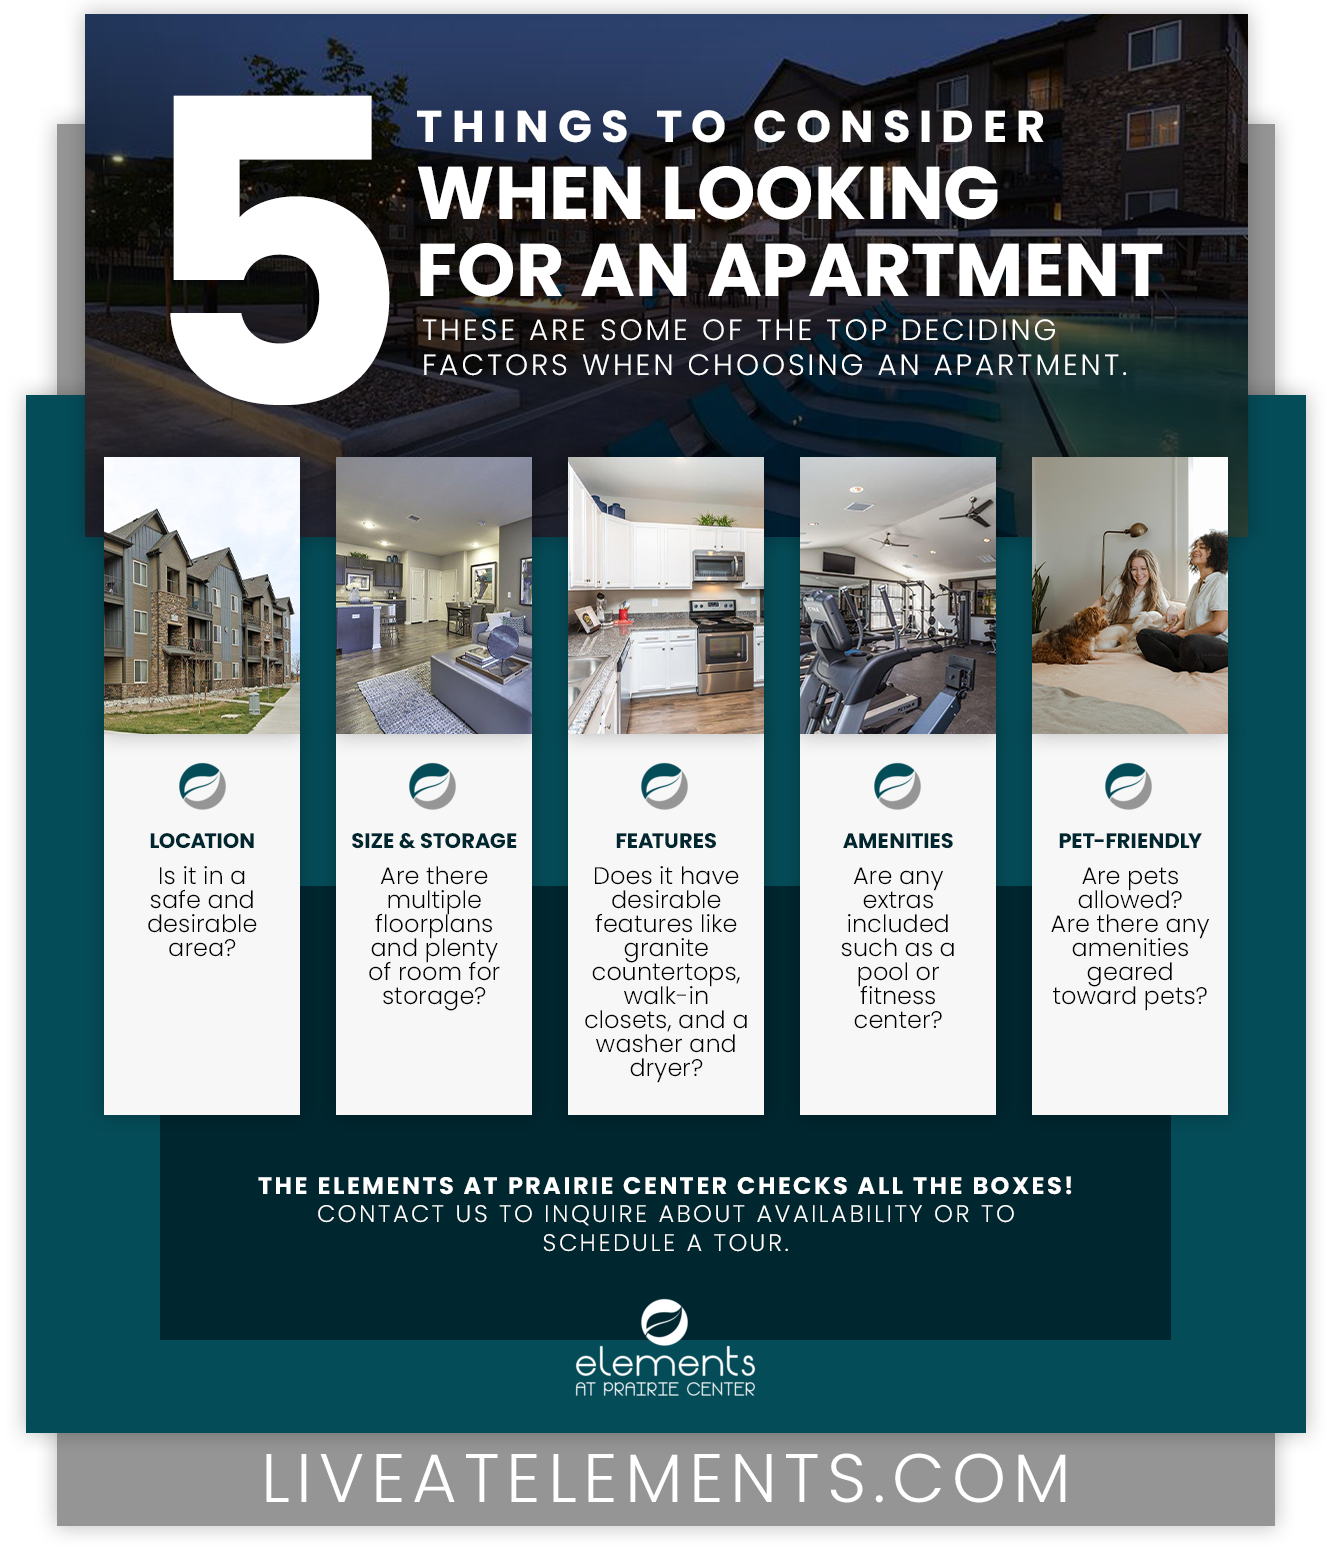 Five Things To Consider When Looking For an Apartment